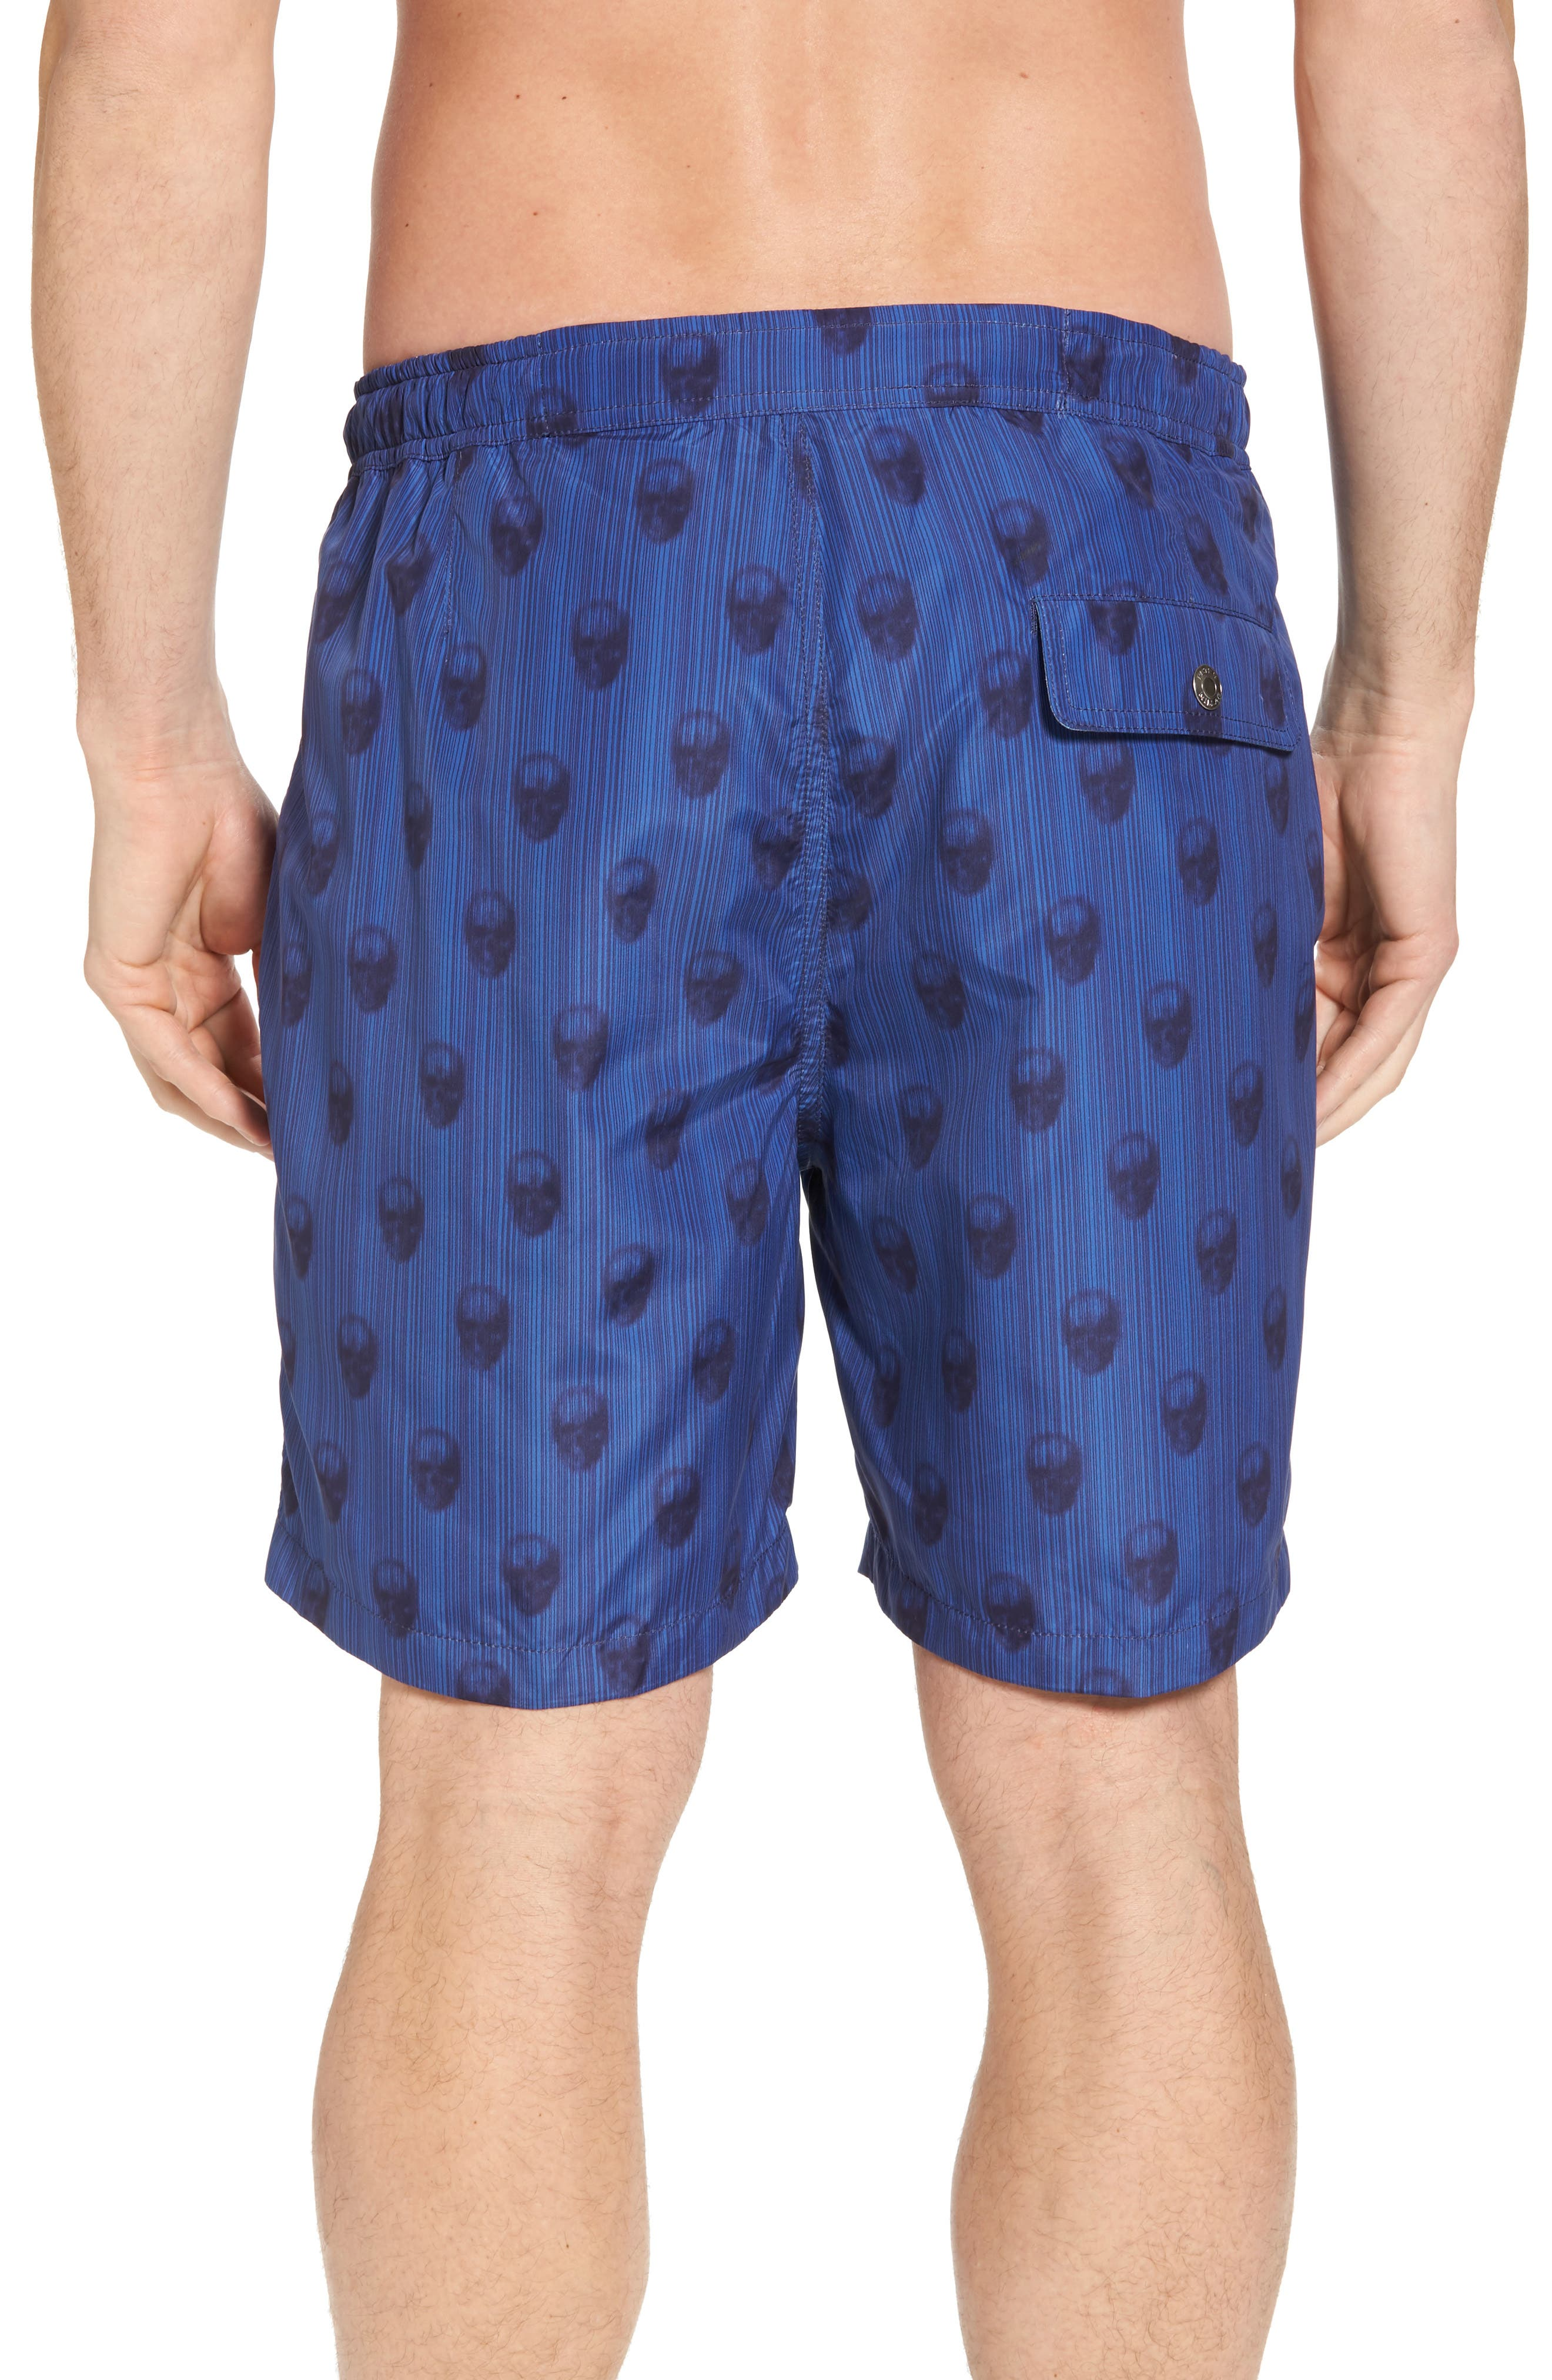 Peter Millar Black Jack's Bay Swim Trunks,                             Alternate thumbnail 2, color,                             440